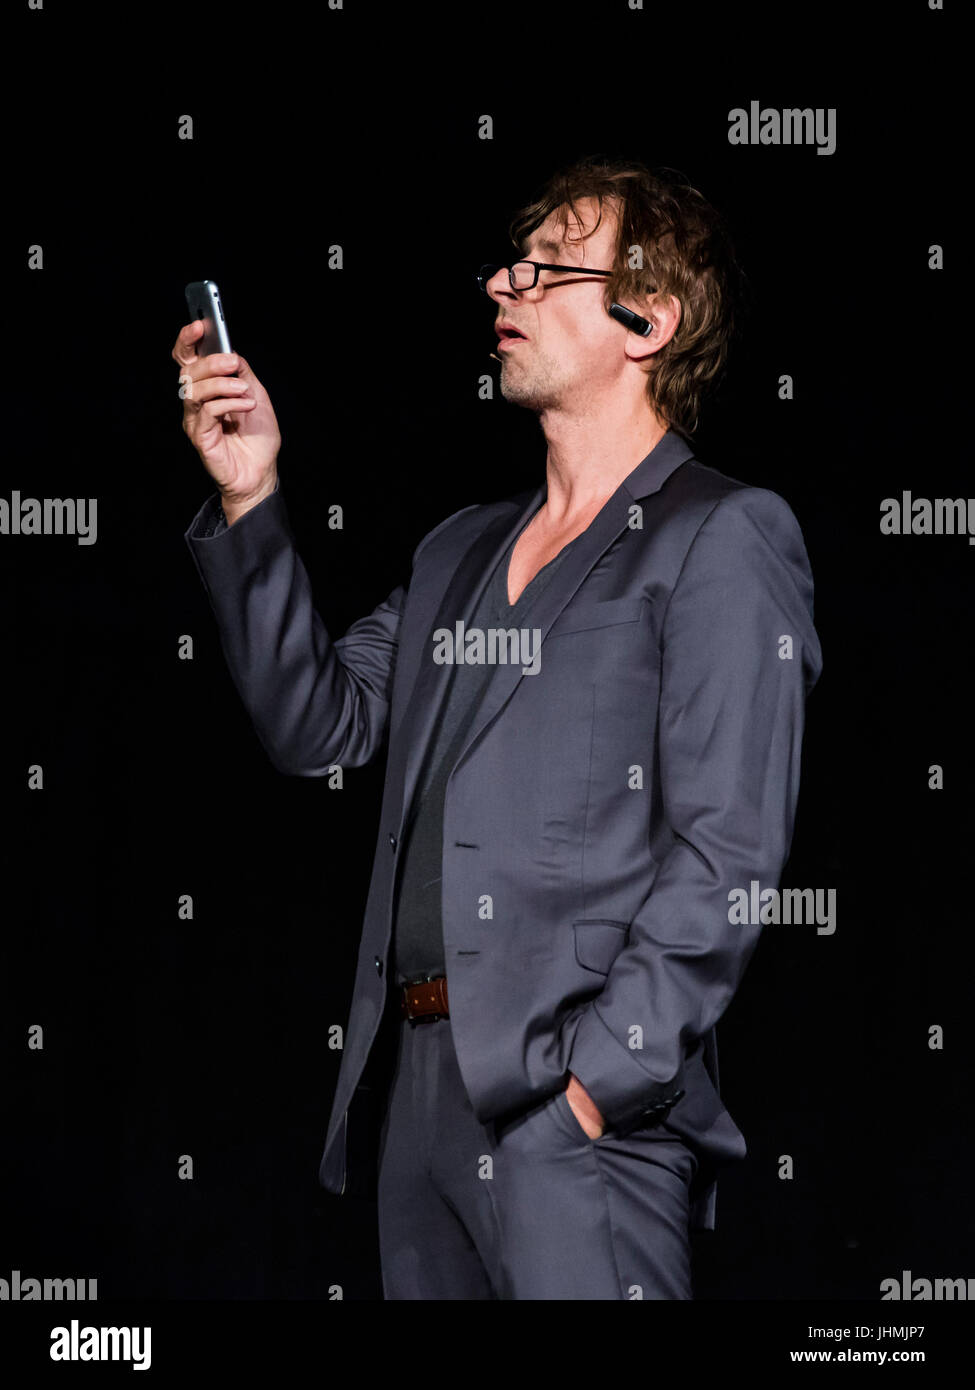 Wetzlar, Germany. 14th July, 2017. Ingolf Lück, German actor, presenter and comedian in his role as tabloid journalist Stock Photo